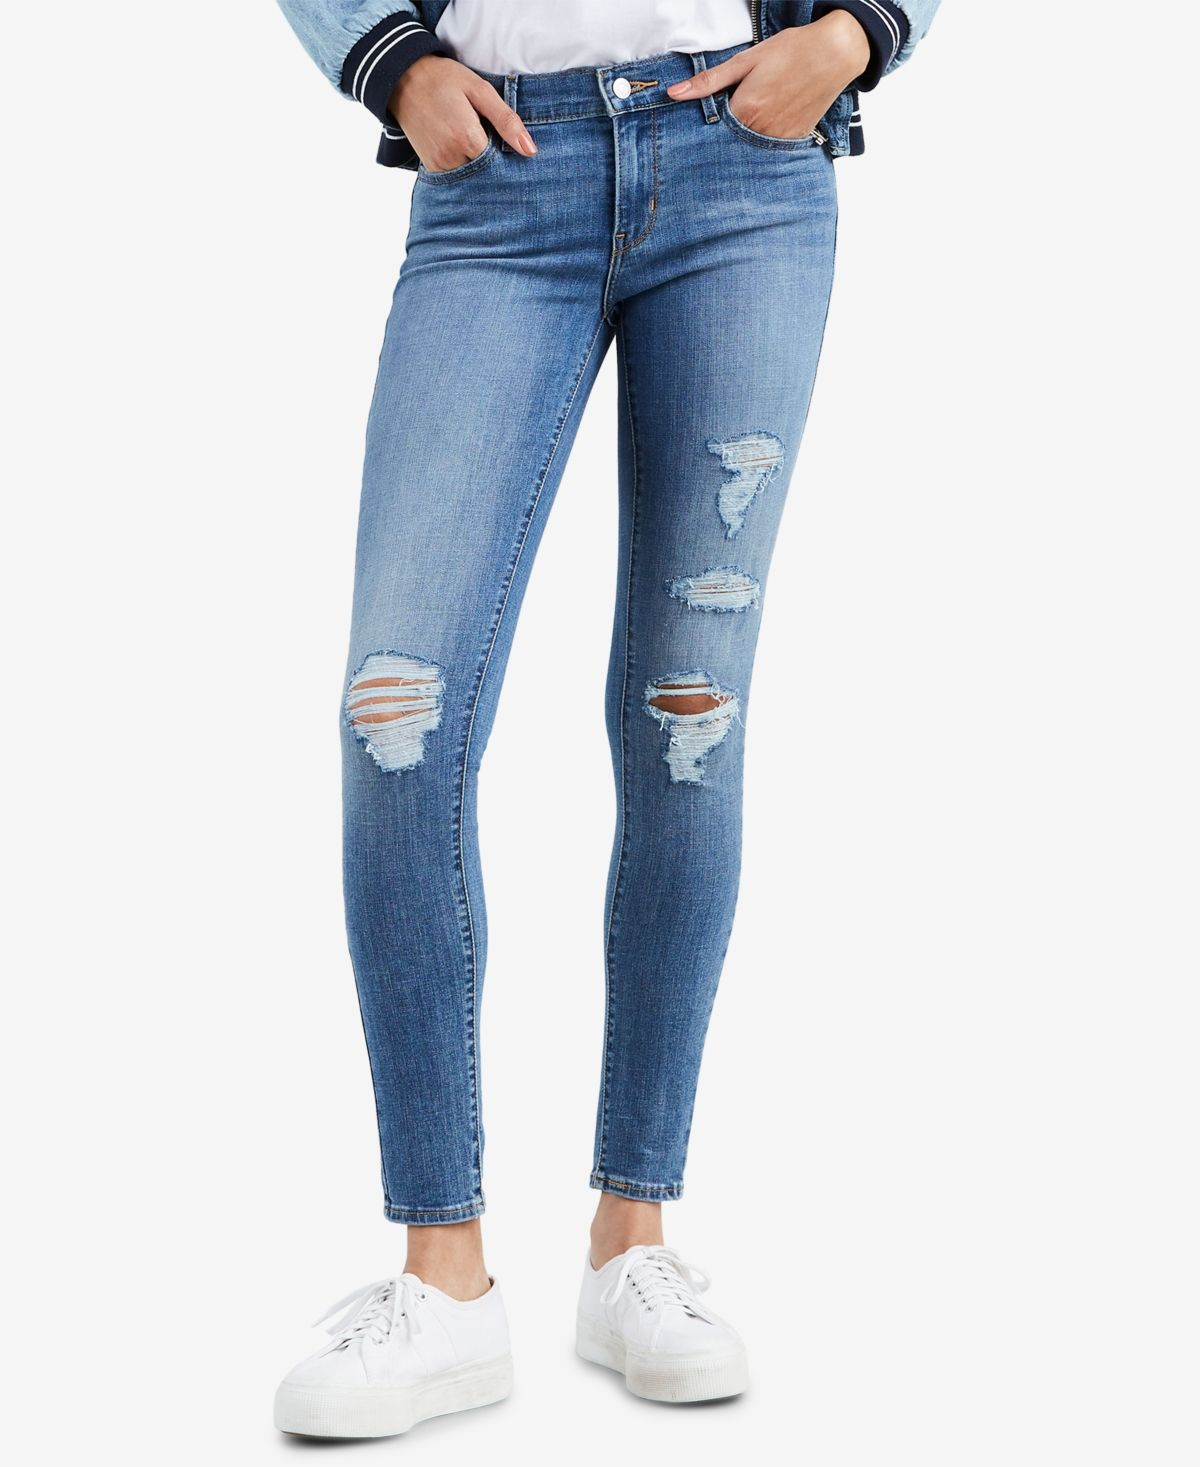 Levi's Women's 710 Super Skinny Jeans Secluded Echo